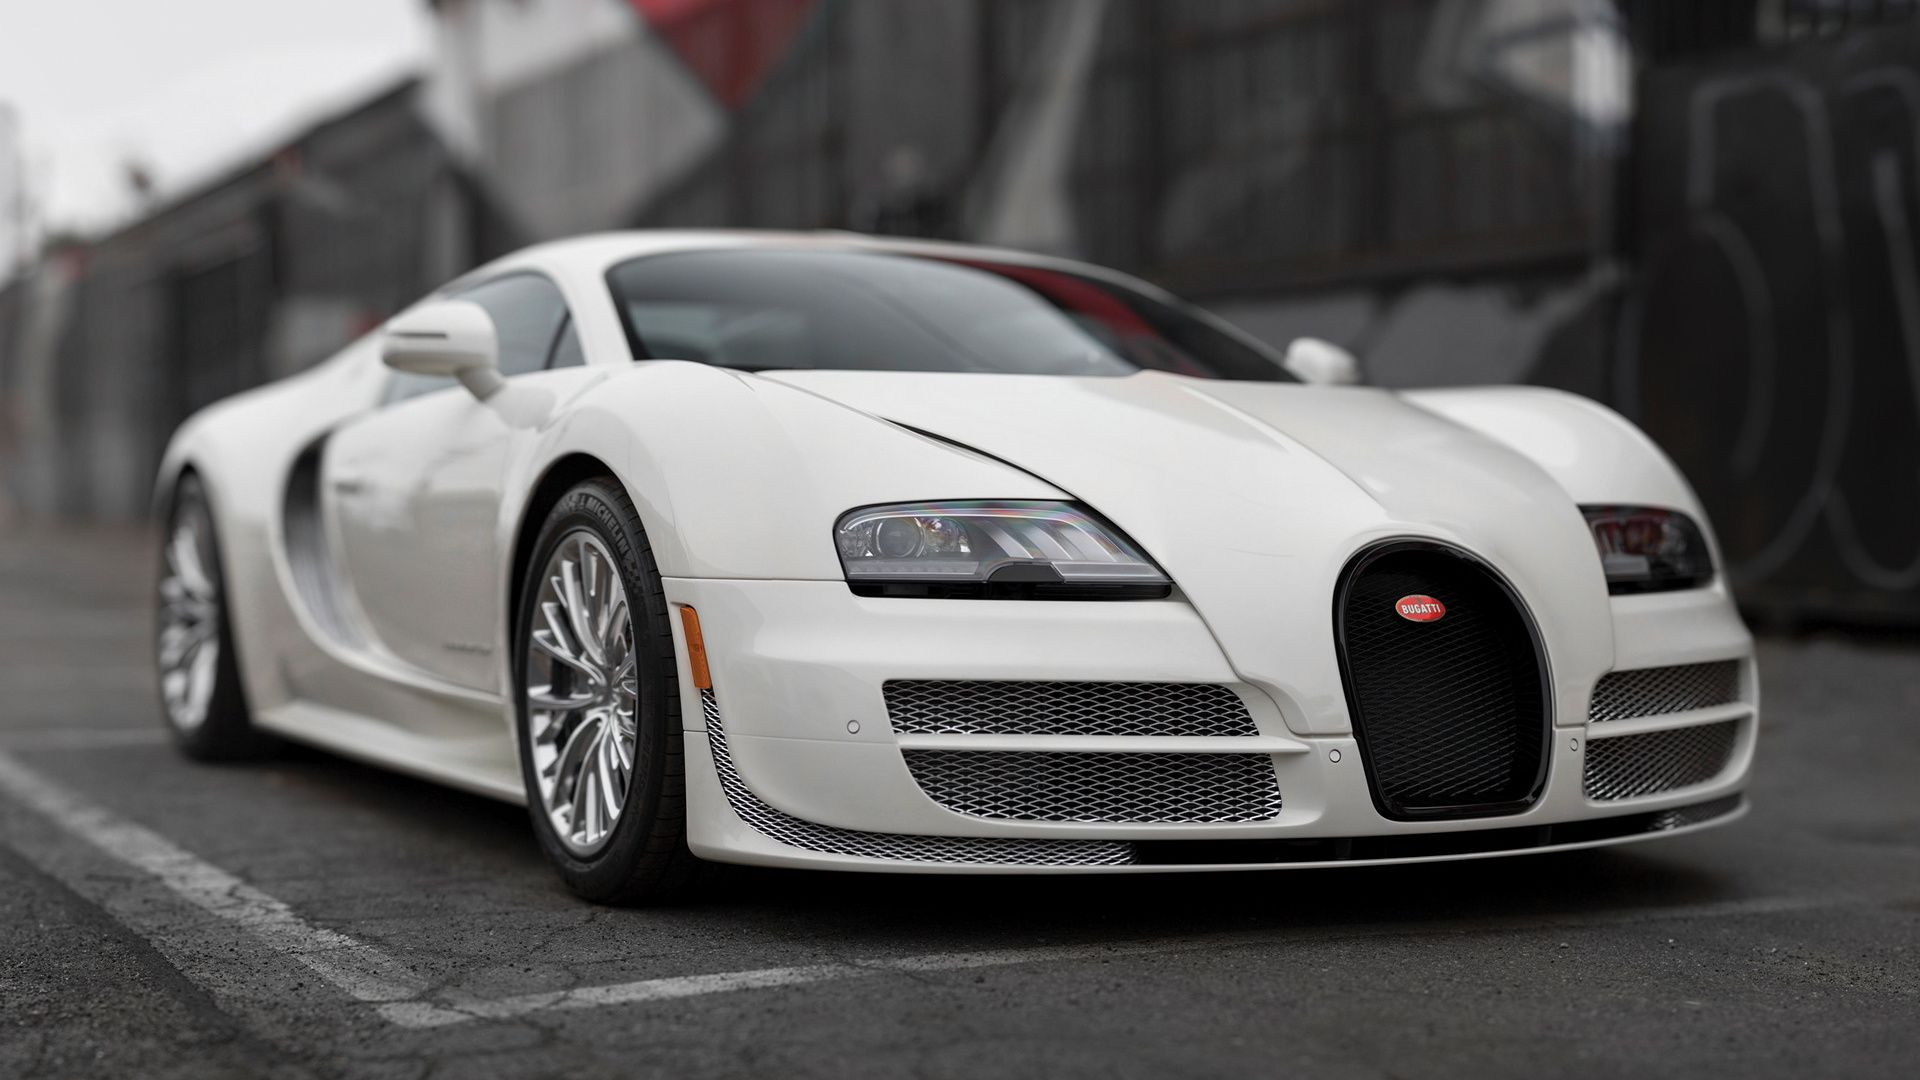 Bugatti Veyron Super Sport Wallpaper Mobile: Black Bugatti Veyron HD Wallpapers